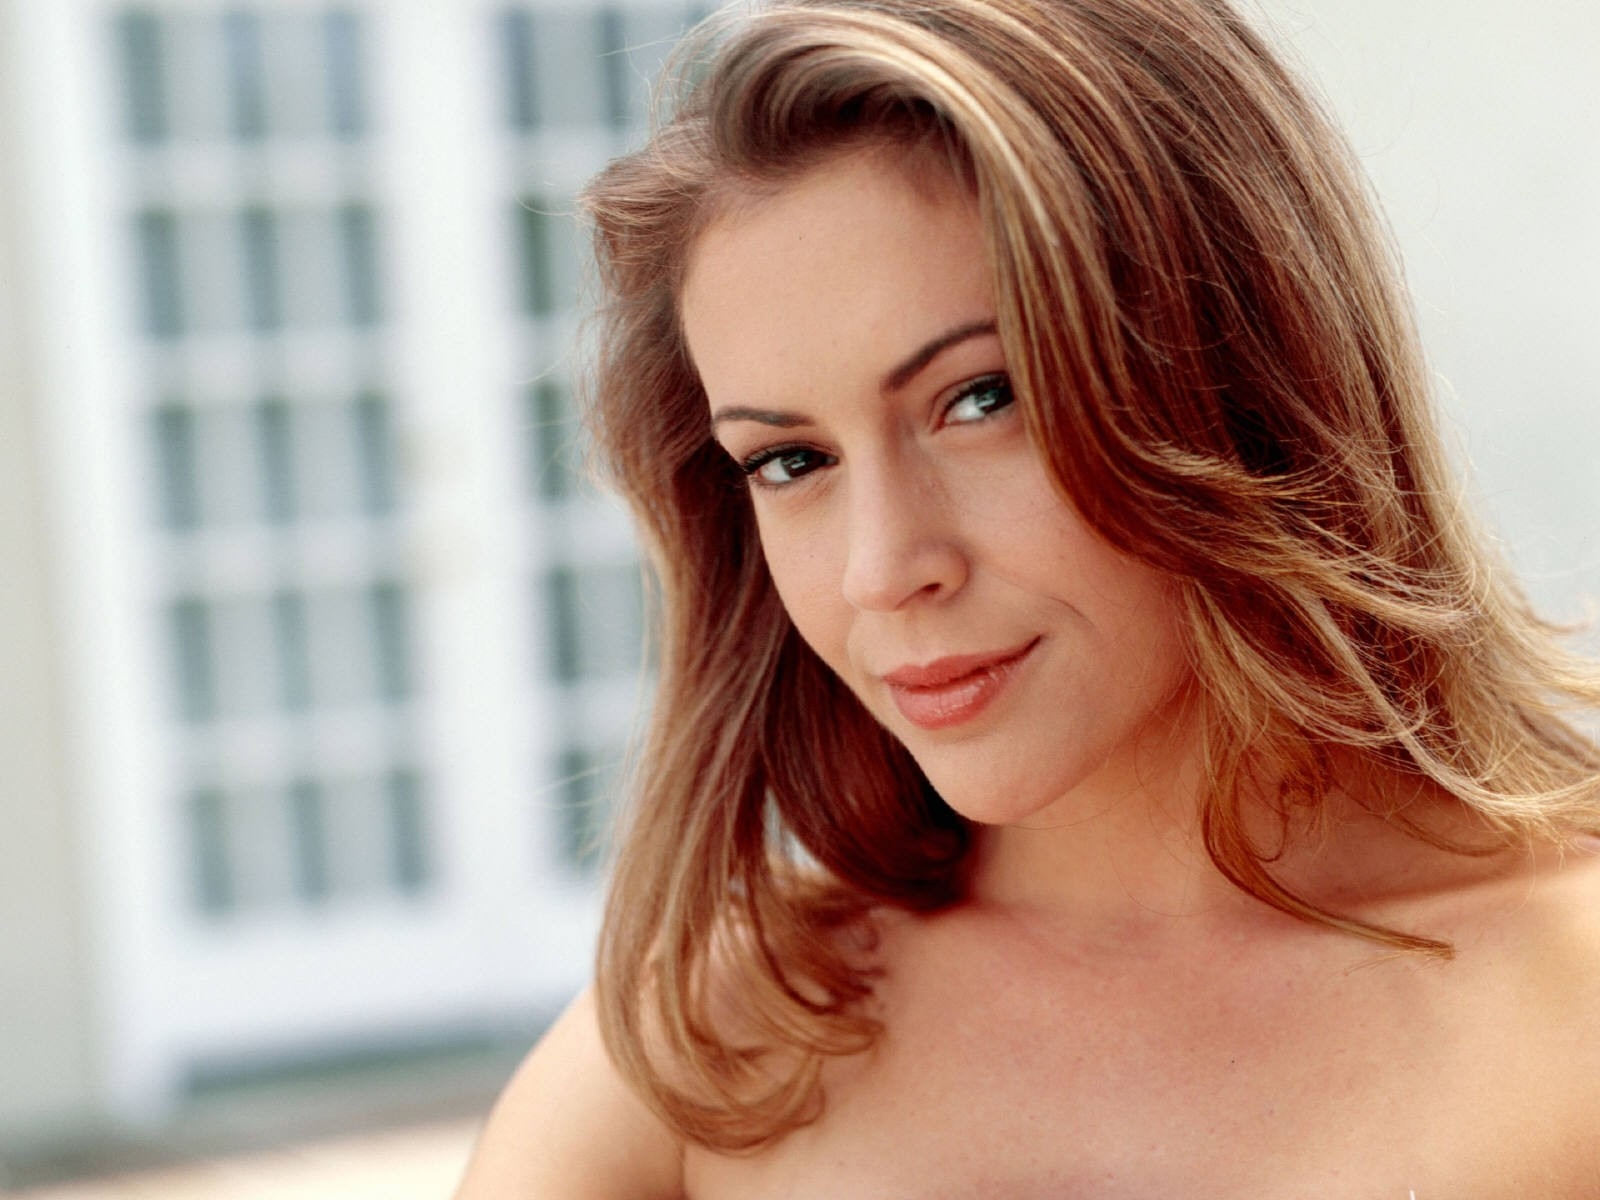 Wallpaper di Alyssa Milano